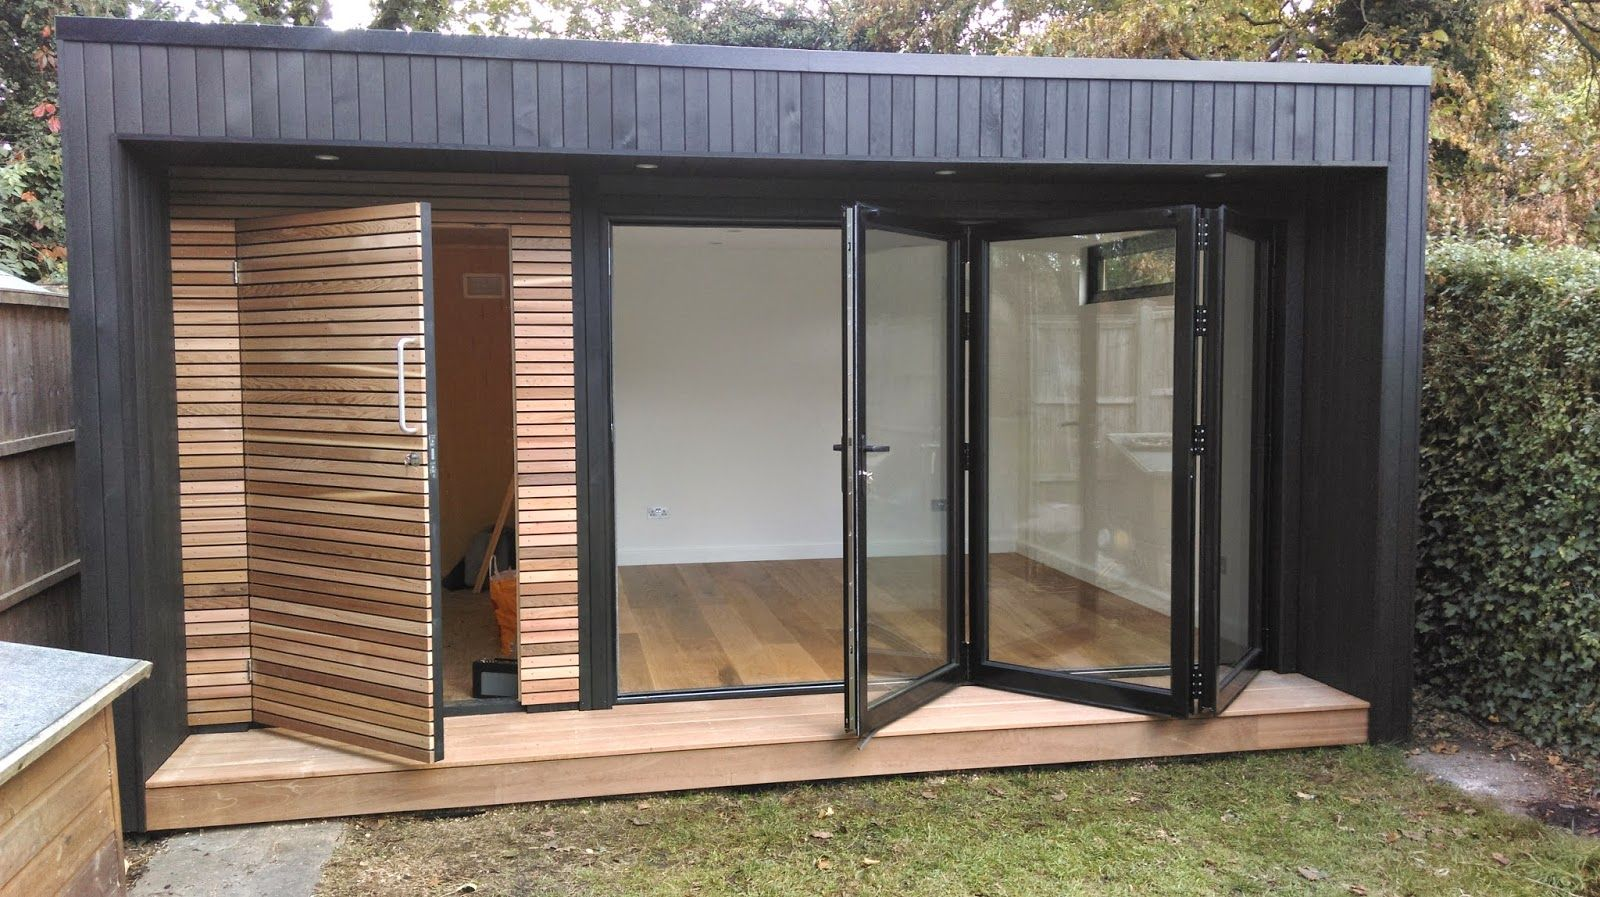 Best 25+ Contemporary Garden Rooms Ideas On Pinterest | Contemporary Summer  Houses, Contemporary Sheds And Walton Sheds